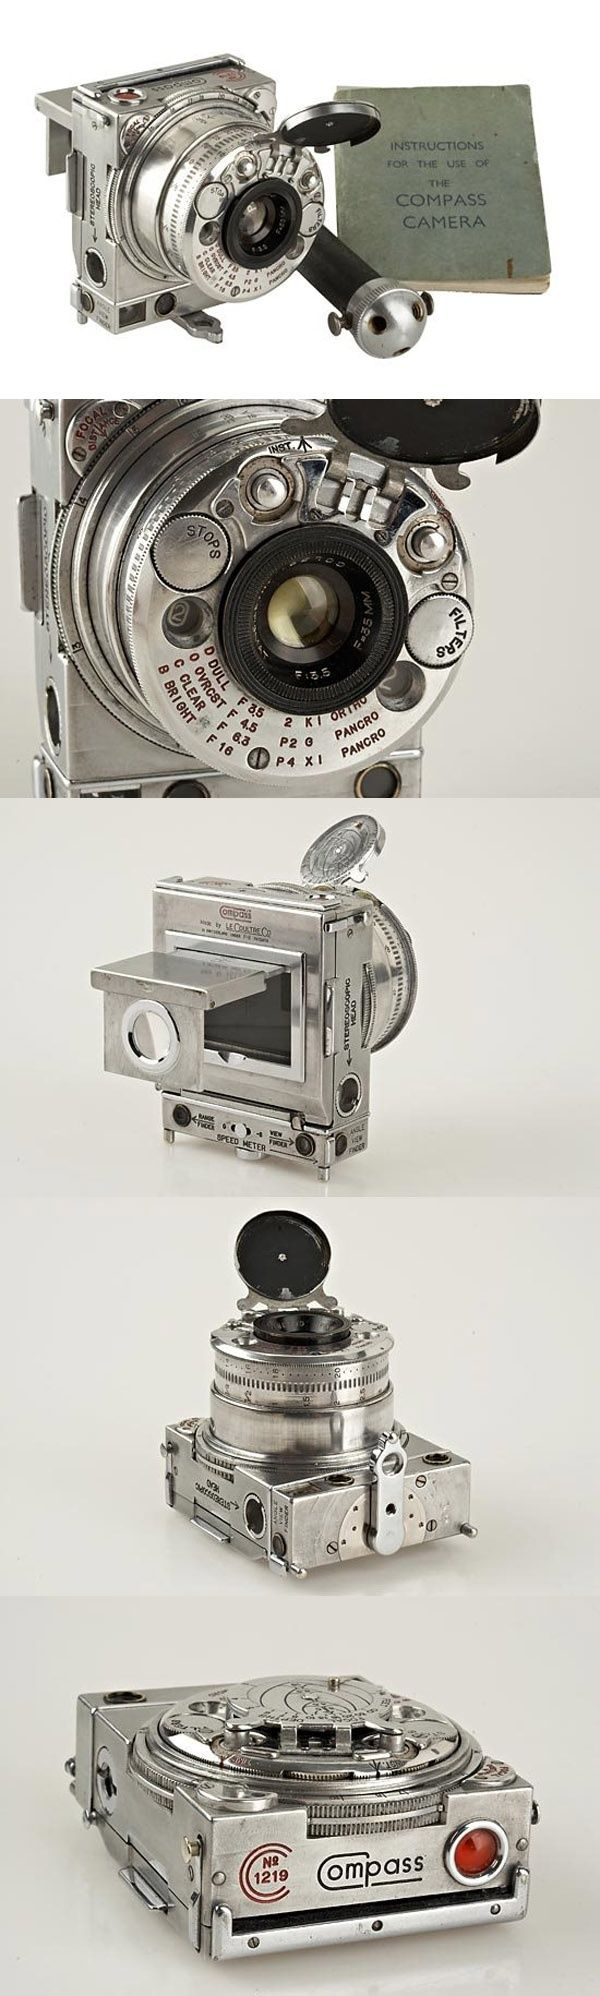 ♂ Compact 35mm rangefinder Camera c.1938 :: made by Jaeger LeCoultre for Compass Camera Ltd. from http://www.liveauctioneers.com/item/2668427